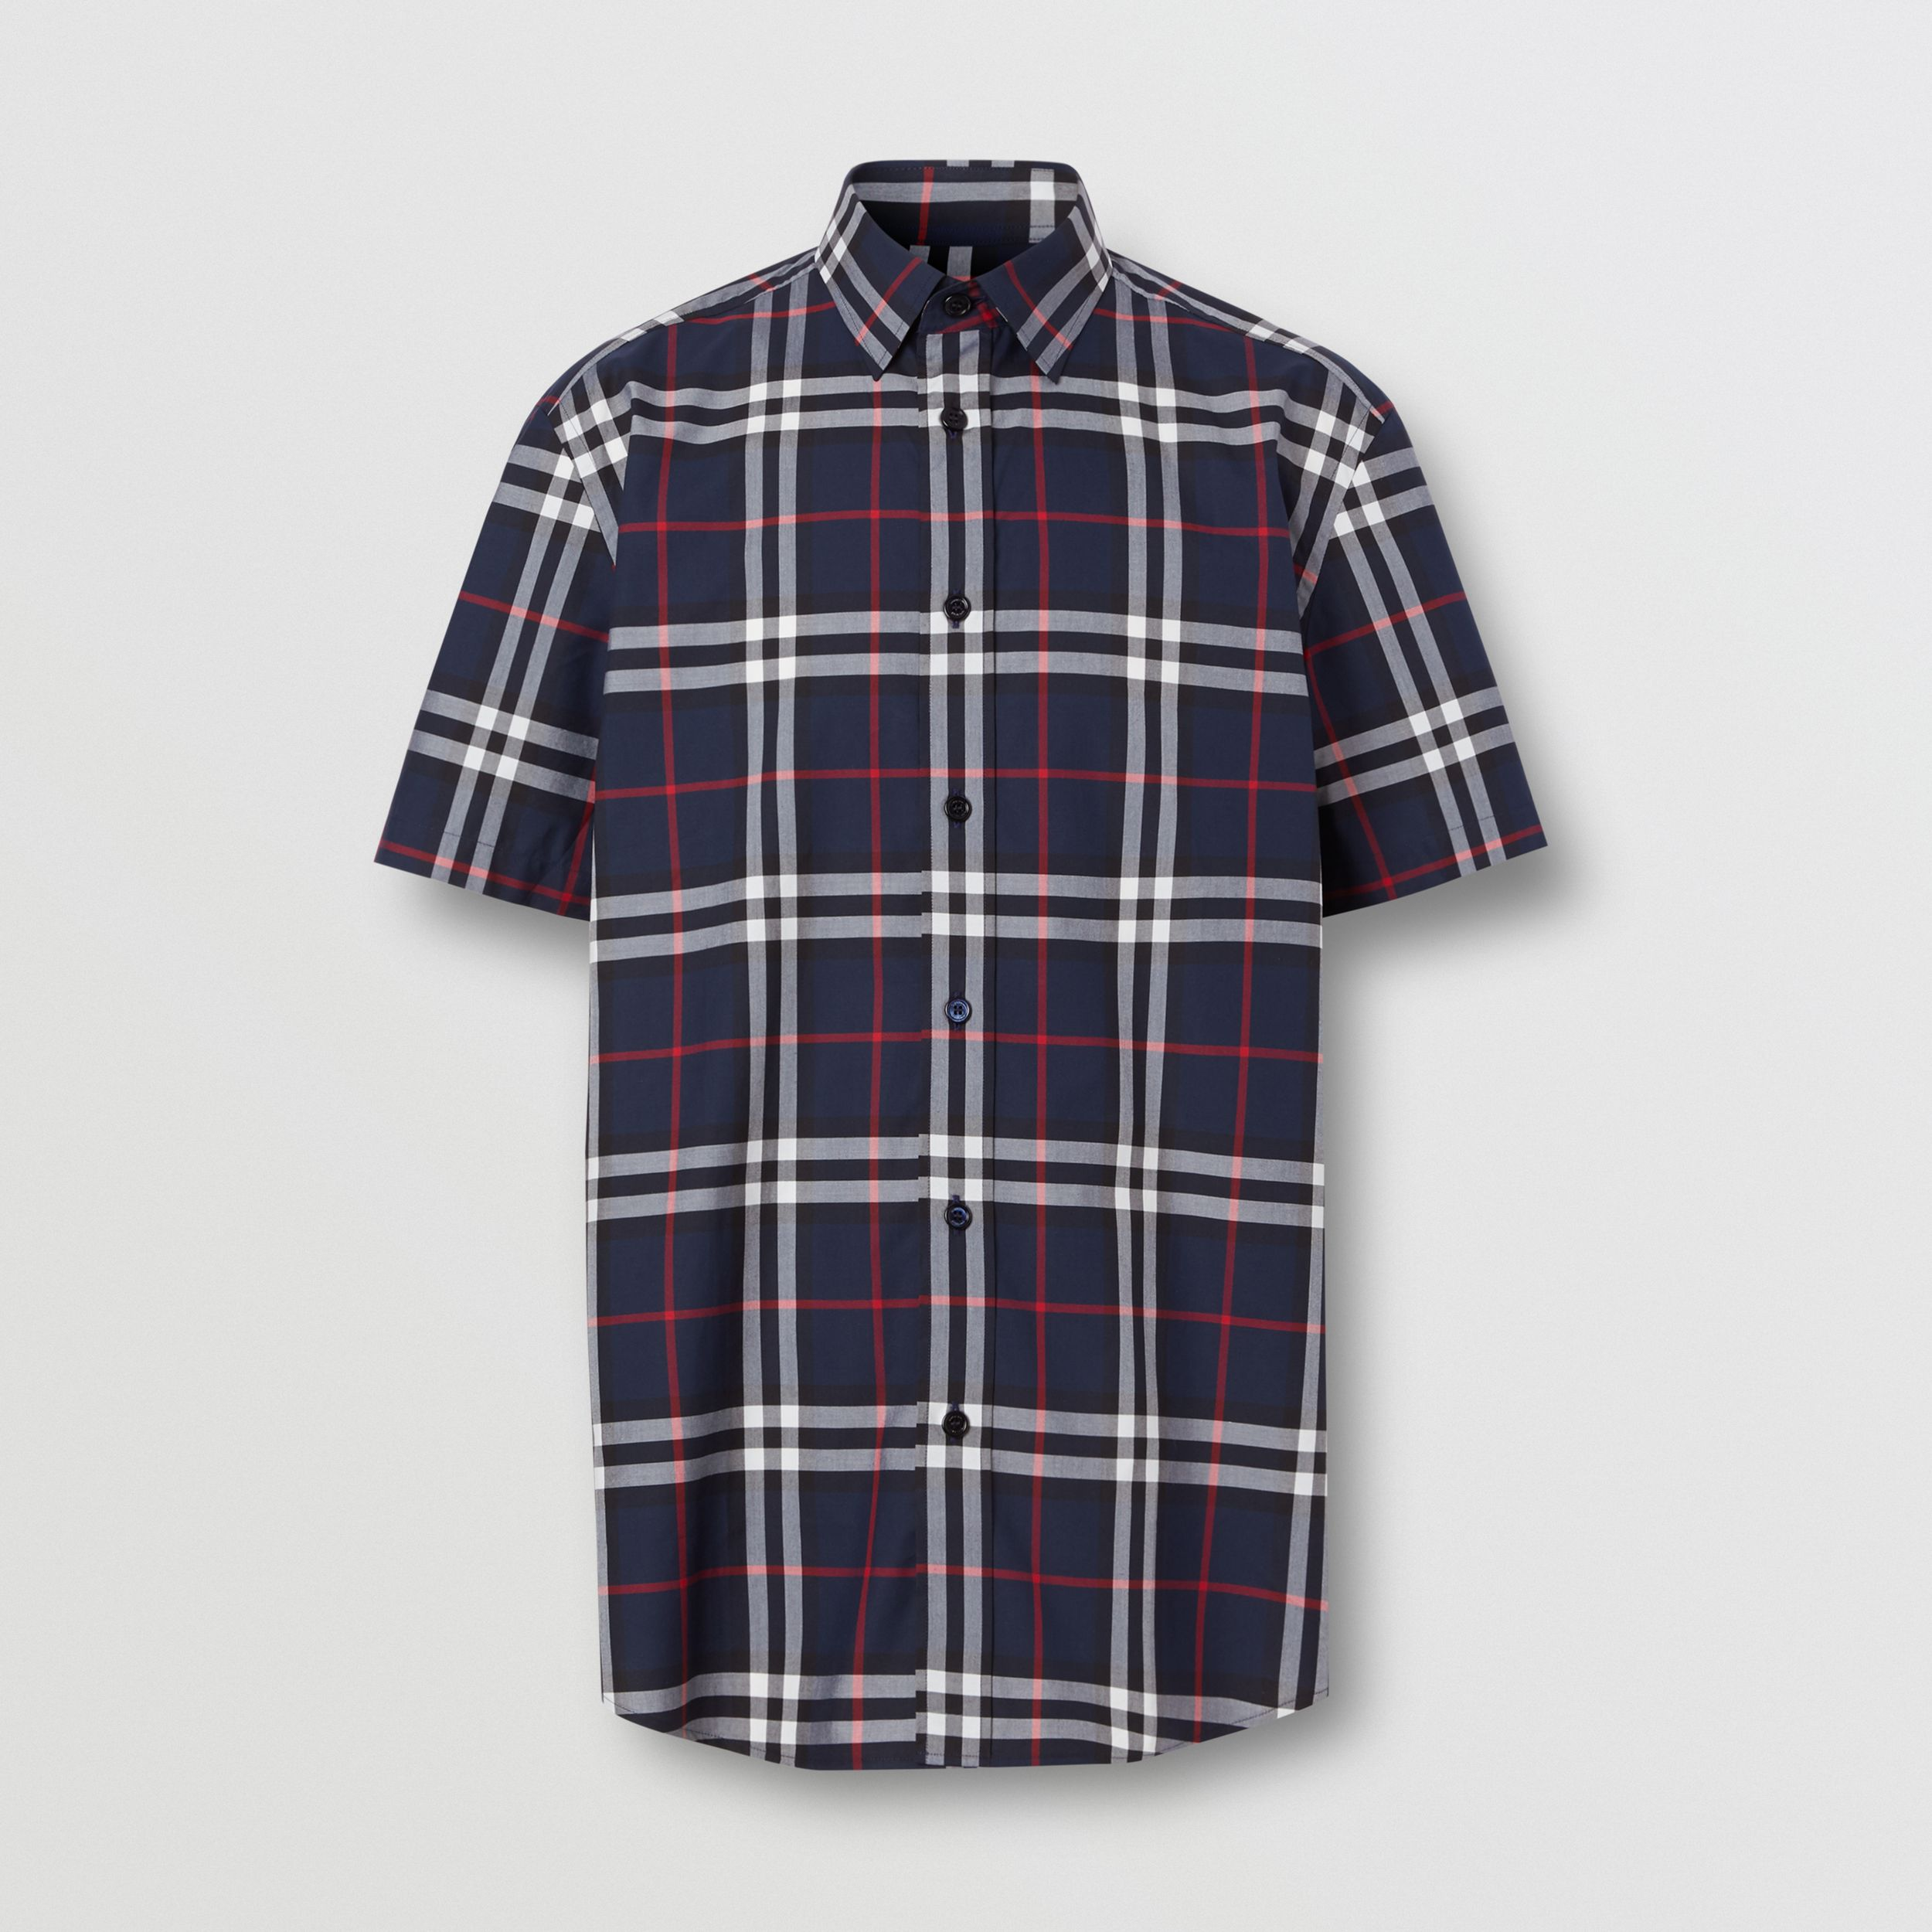 Short-sleeve Check Cotton Poplin Shirt in Navy - Men | Burberry Canada - 4